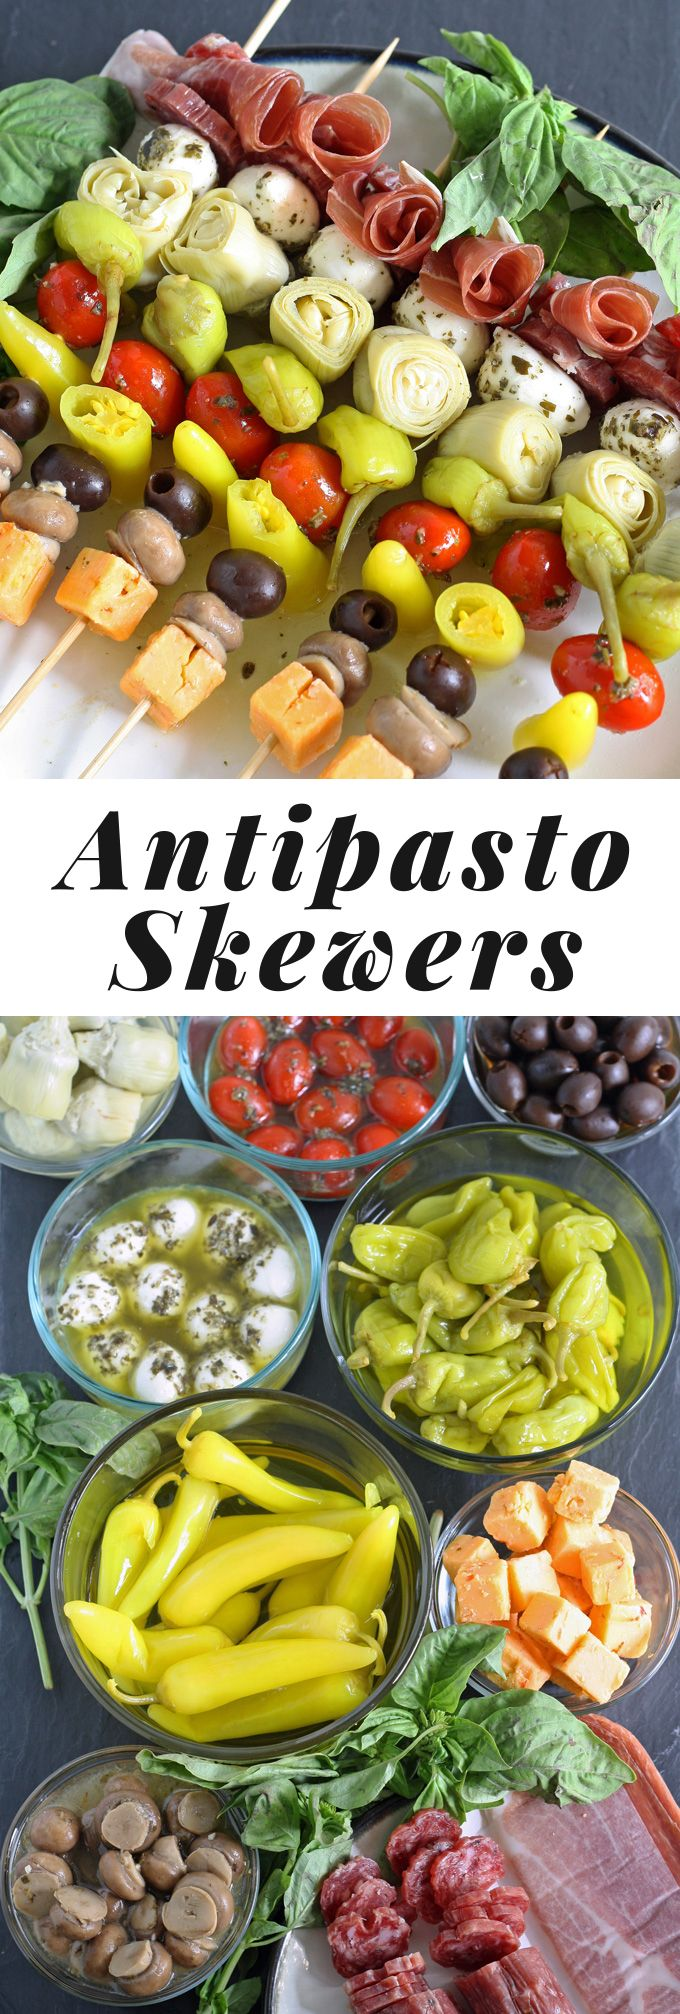 These antipasto skewers are the perfect lazy day appetizer. They can easily be made from store bought pickled items or from your pantry stash! Easy to eat and very delicious! | honeyandbirch.com